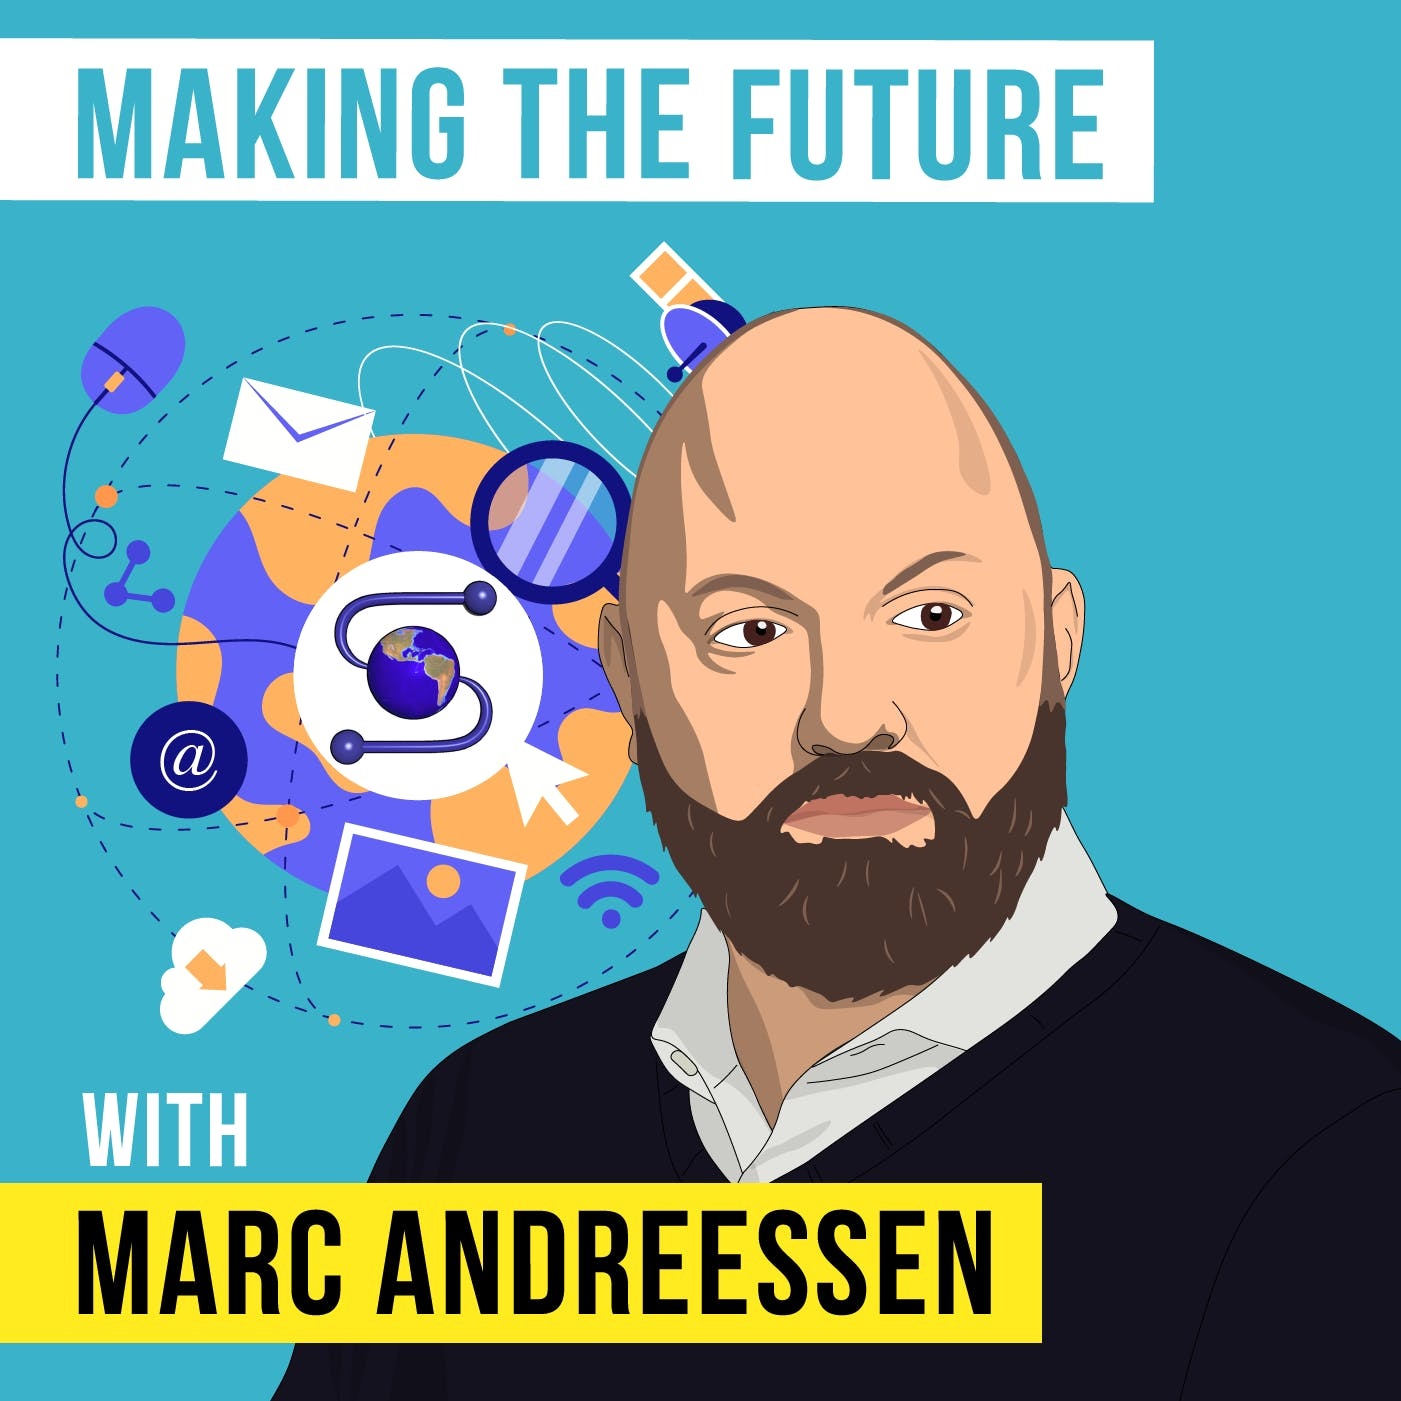 making-the-future-|-marc-andreessen-on-make-investments-love-the-easiest-with-patrick-o'shaughnessy